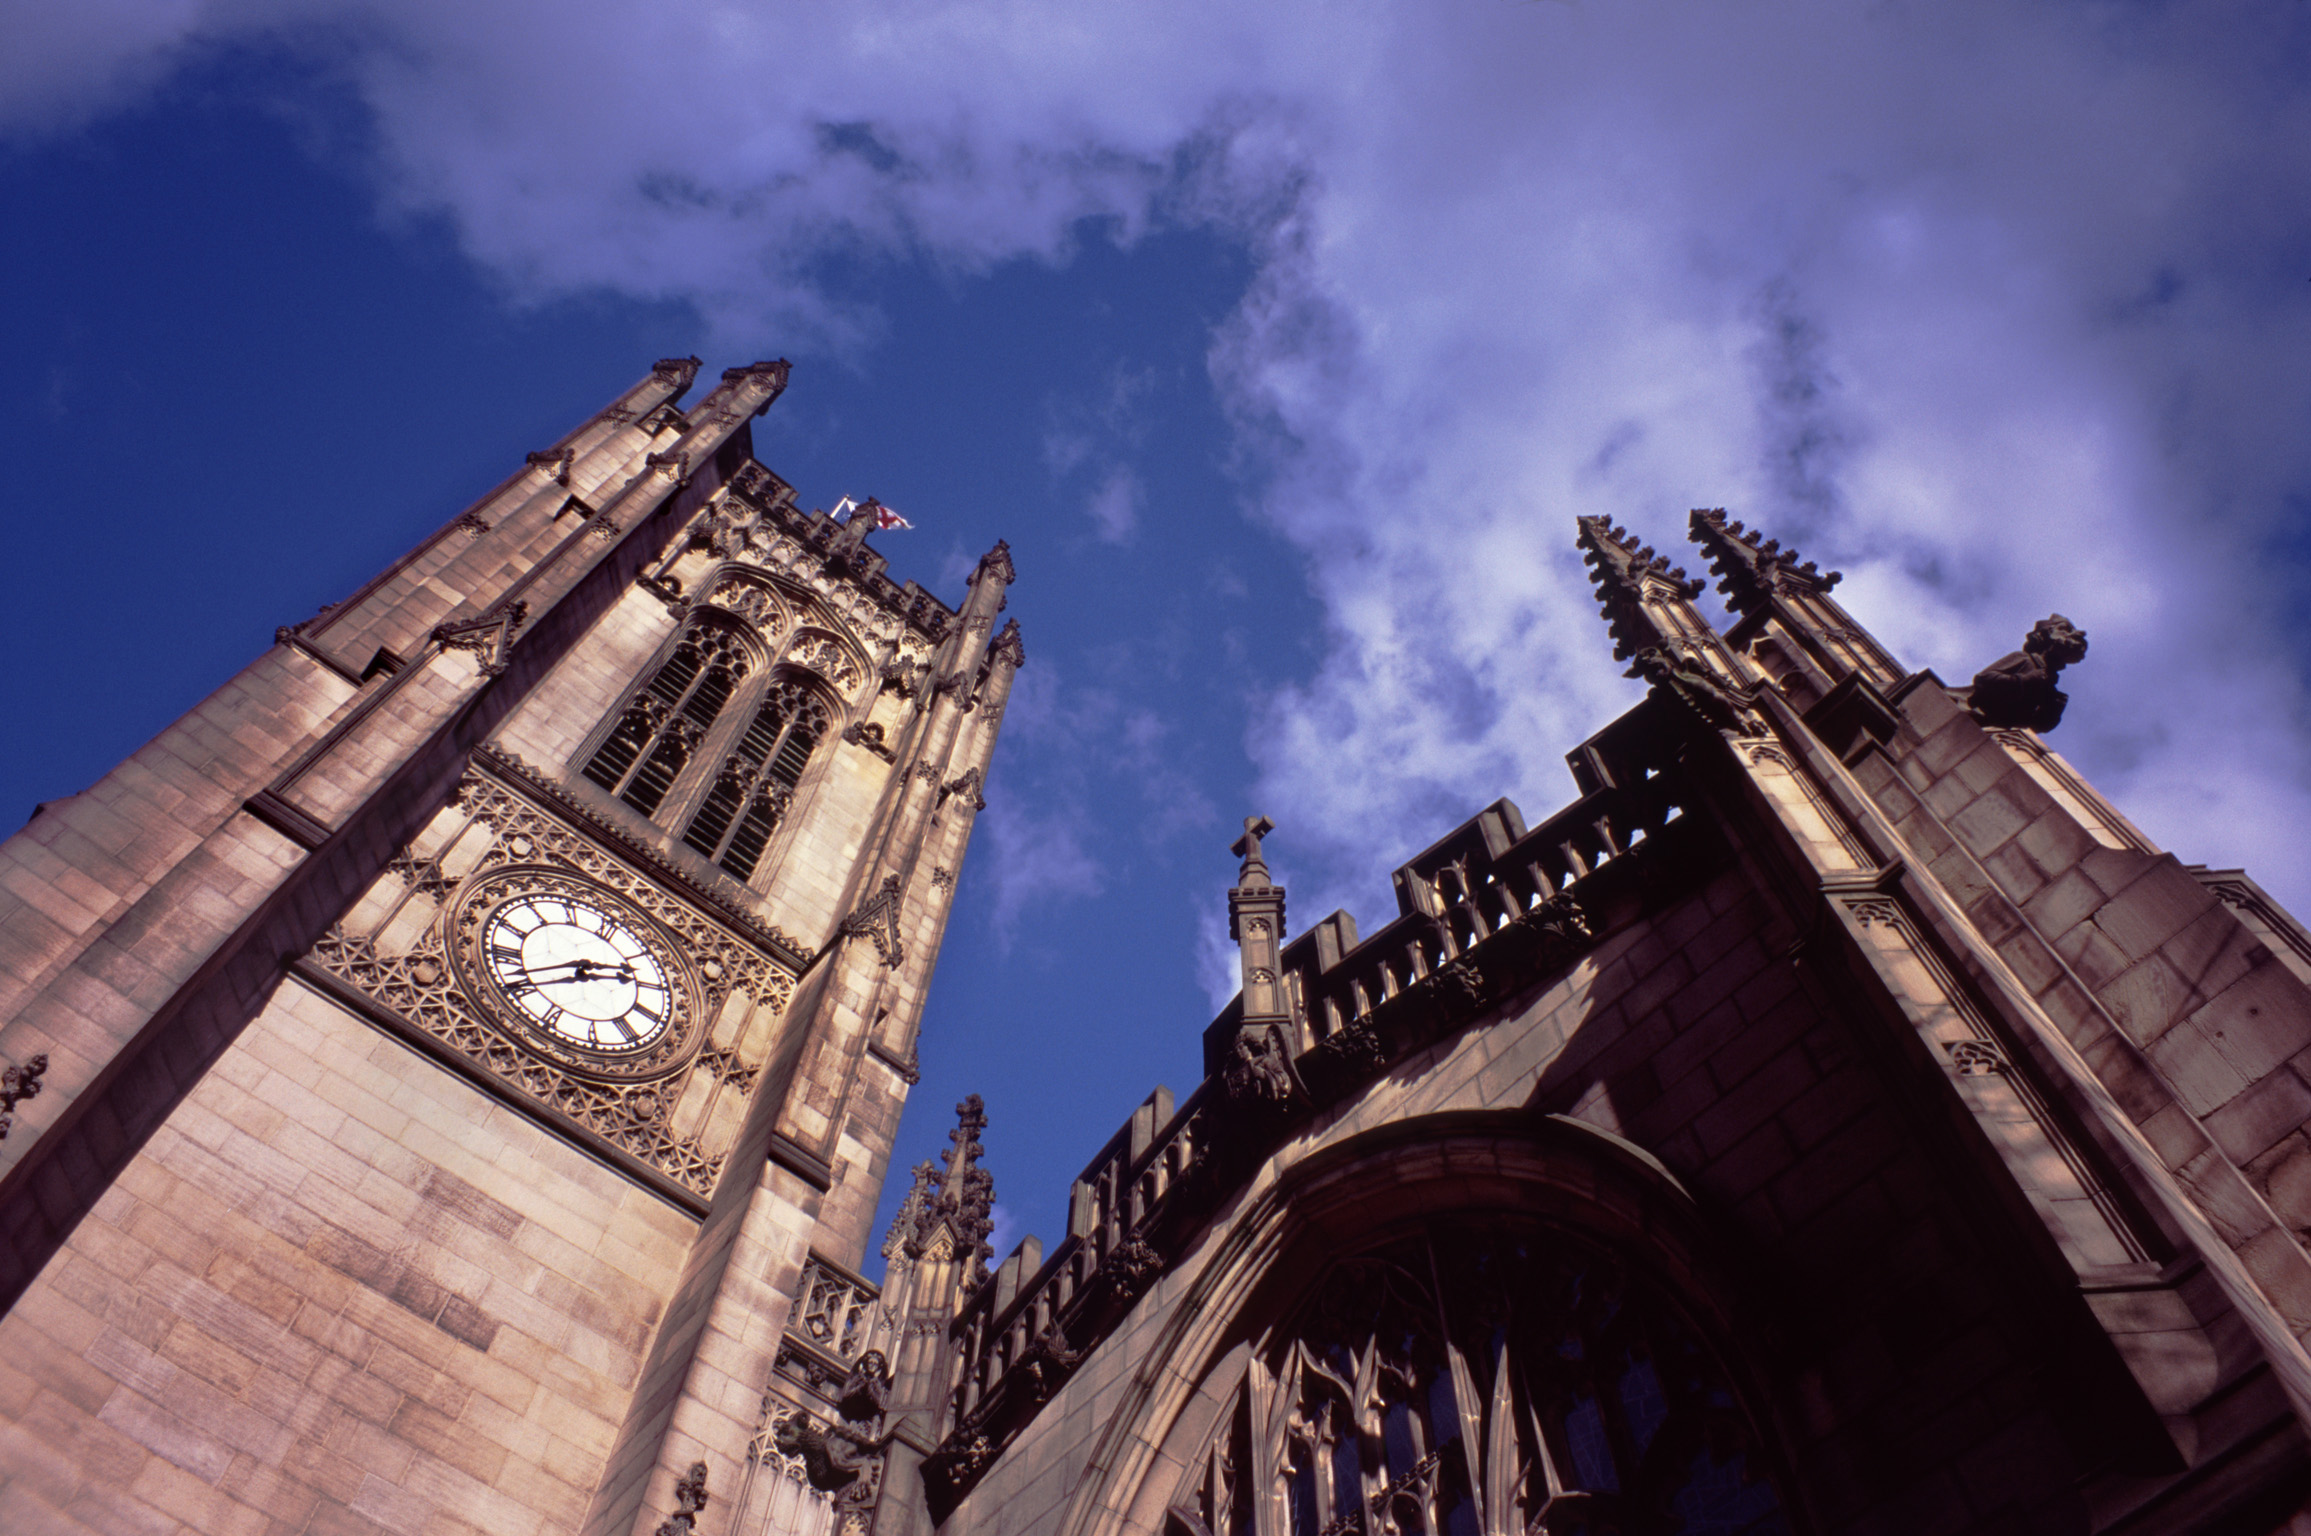 Famous Vintage Architectural Manchester Cathedral Building. Captured from Low Angle Point